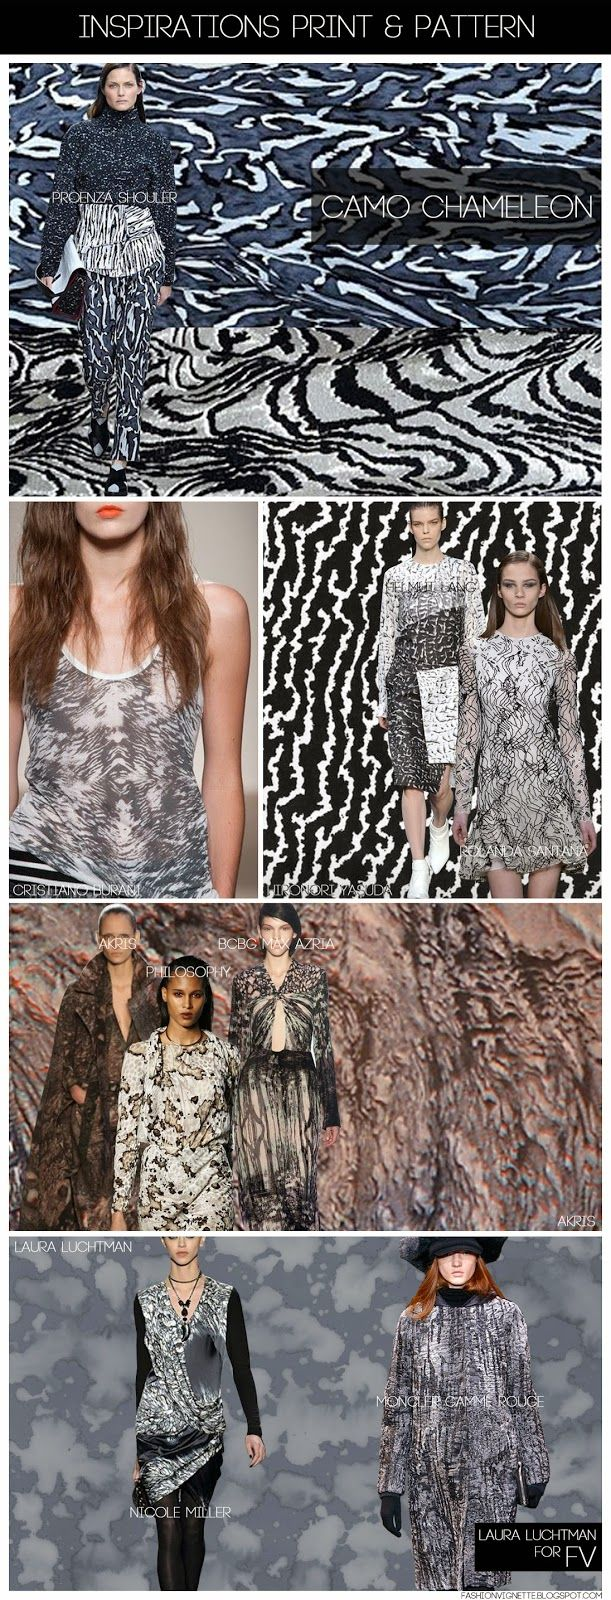 A/W 15 - 16 Prints and Patterns